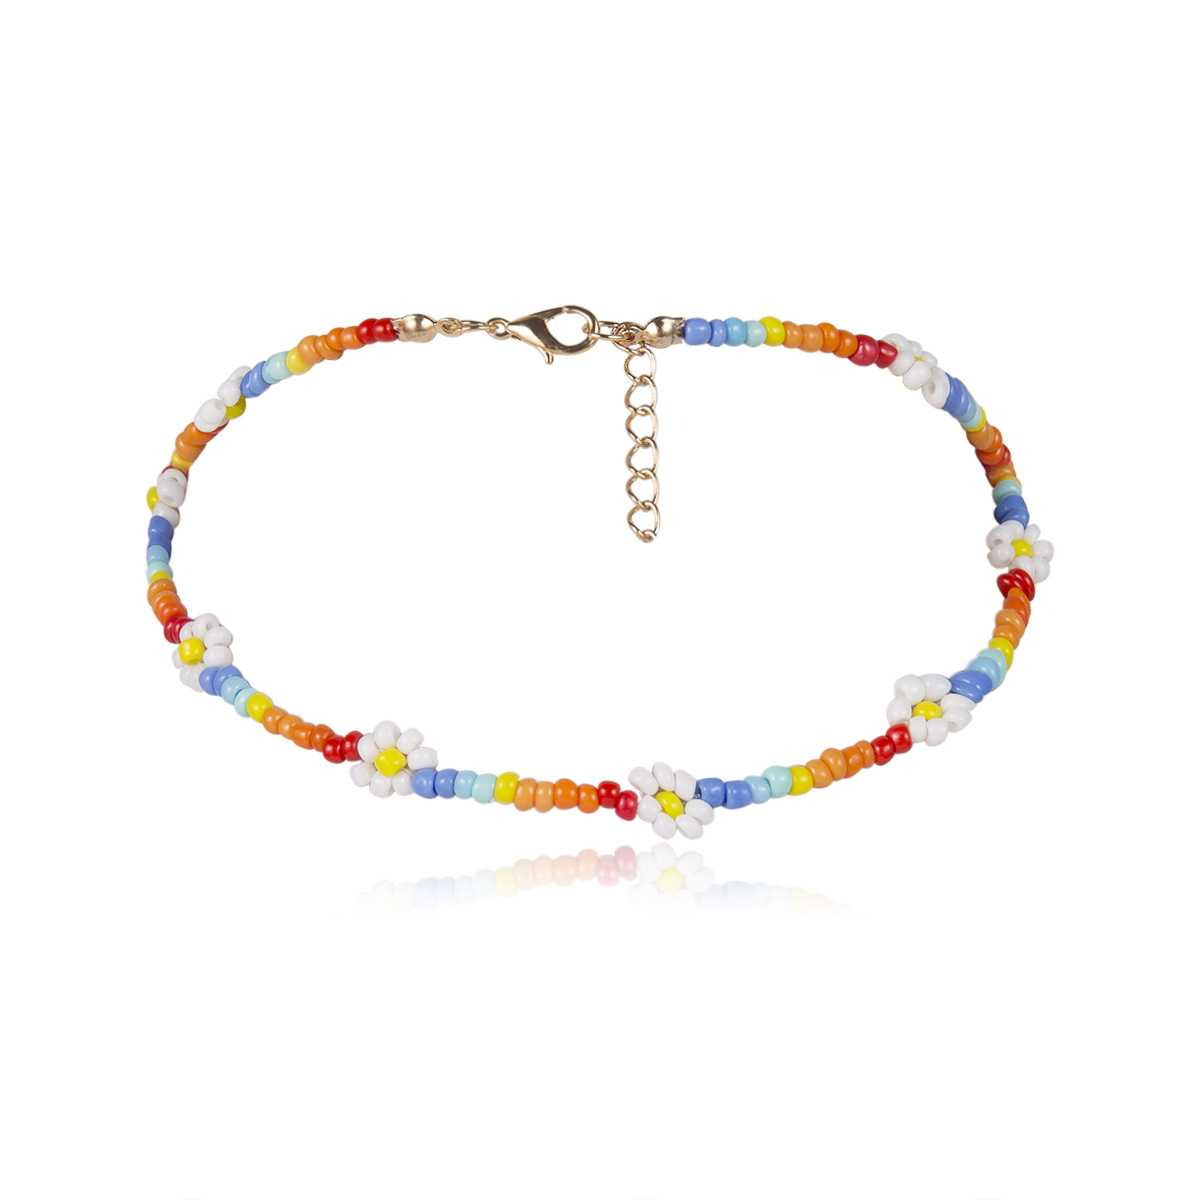 Boho Handmade Colorful Flower Rainbow Beaded Choker Necklaces